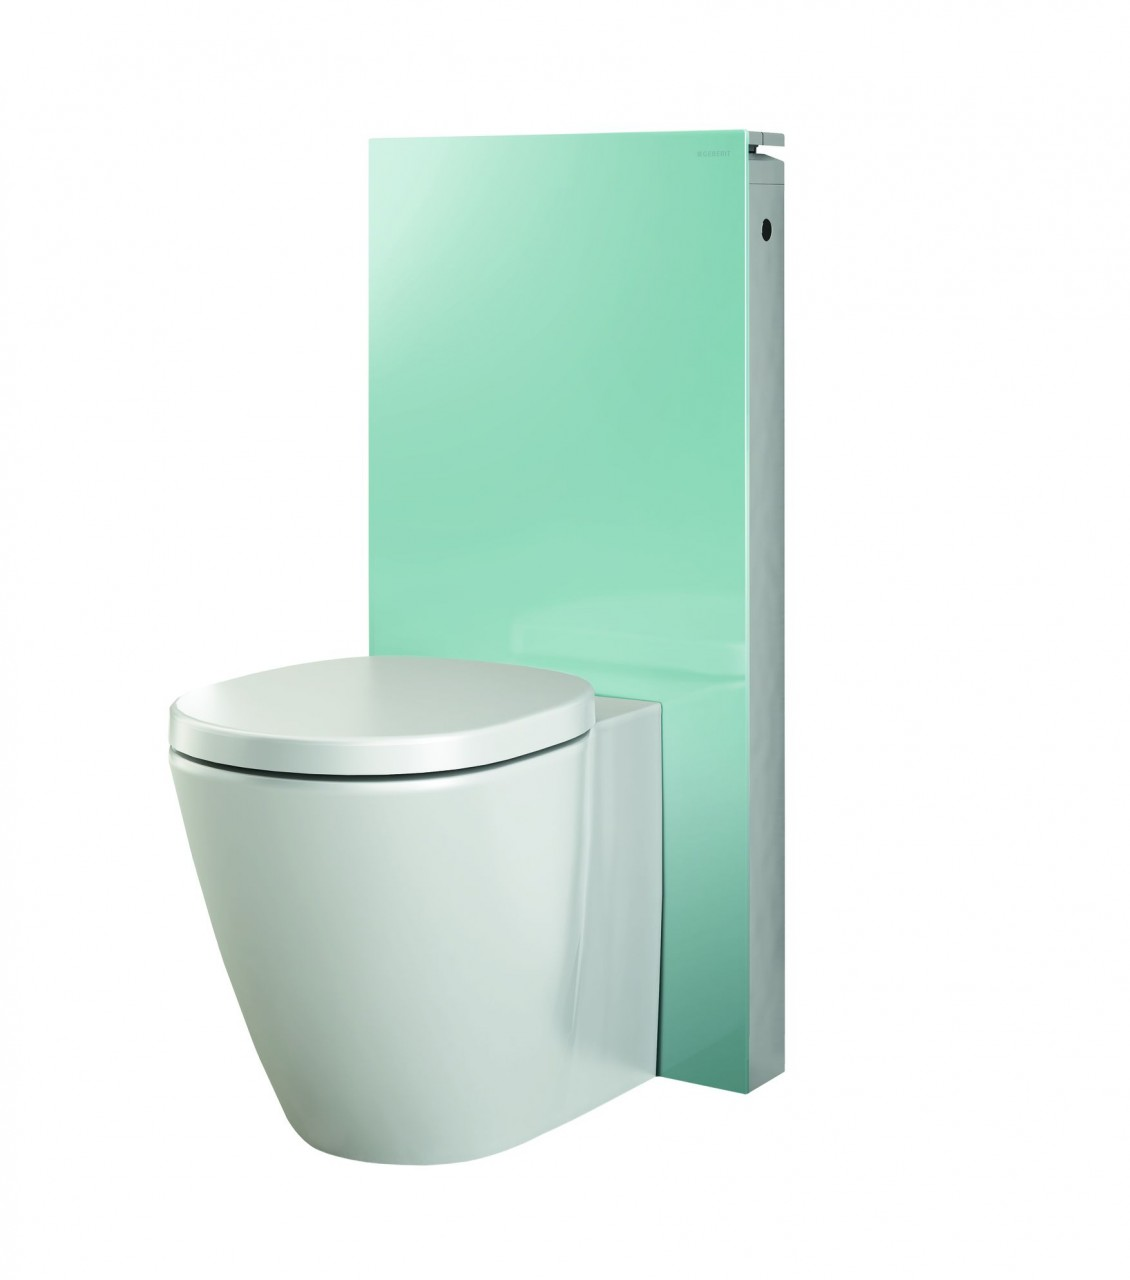 geberit monolith 101 for floor mounted wc mint glass ap bath rooms. Black Bedroom Furniture Sets. Home Design Ideas